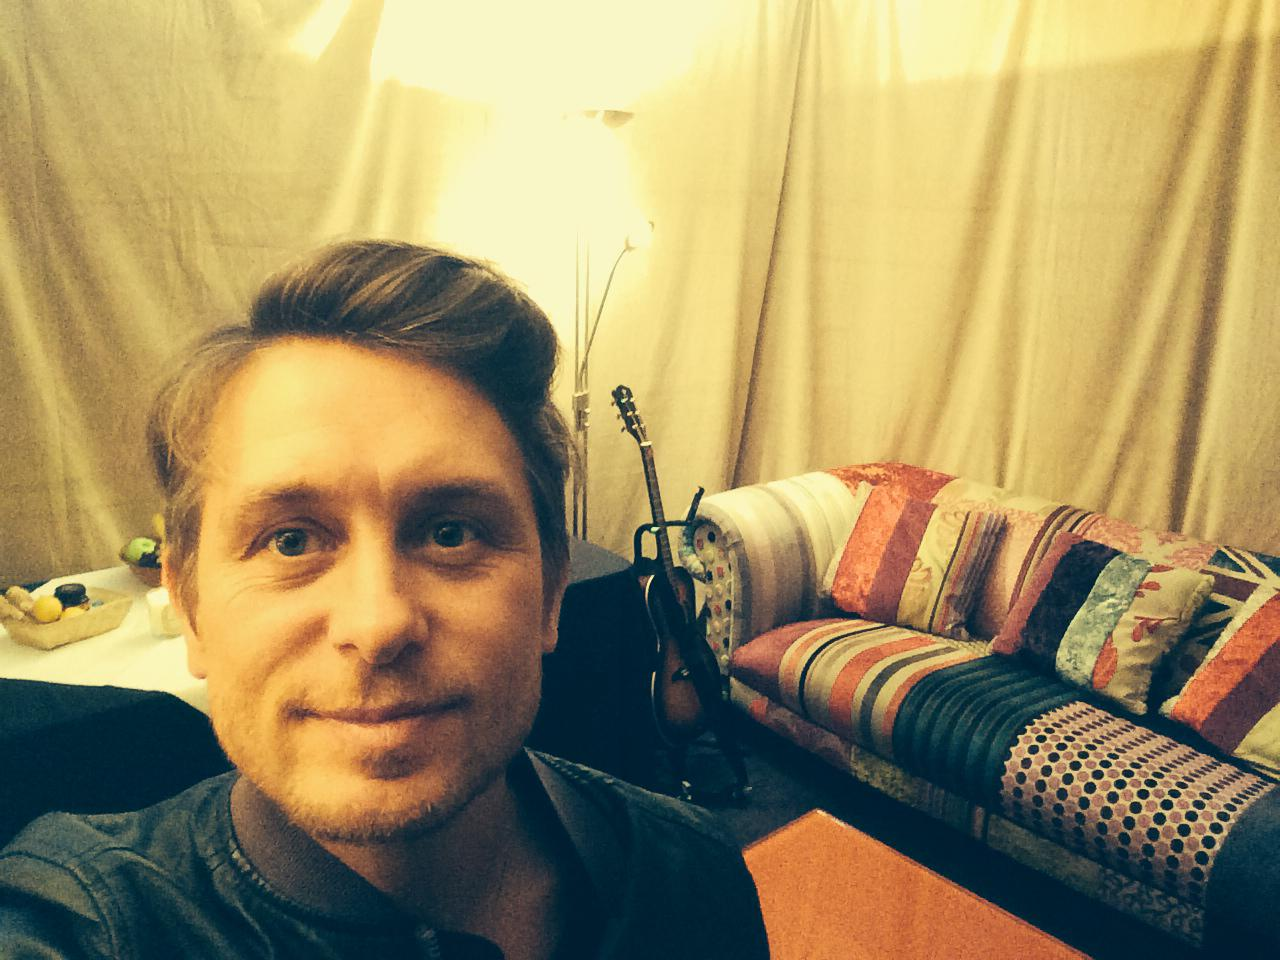 RT @OfficialMarkO: Photo bombing the dressing room!!! Love M.O X  #TTIII http://t.co/QvlOg8Oabm